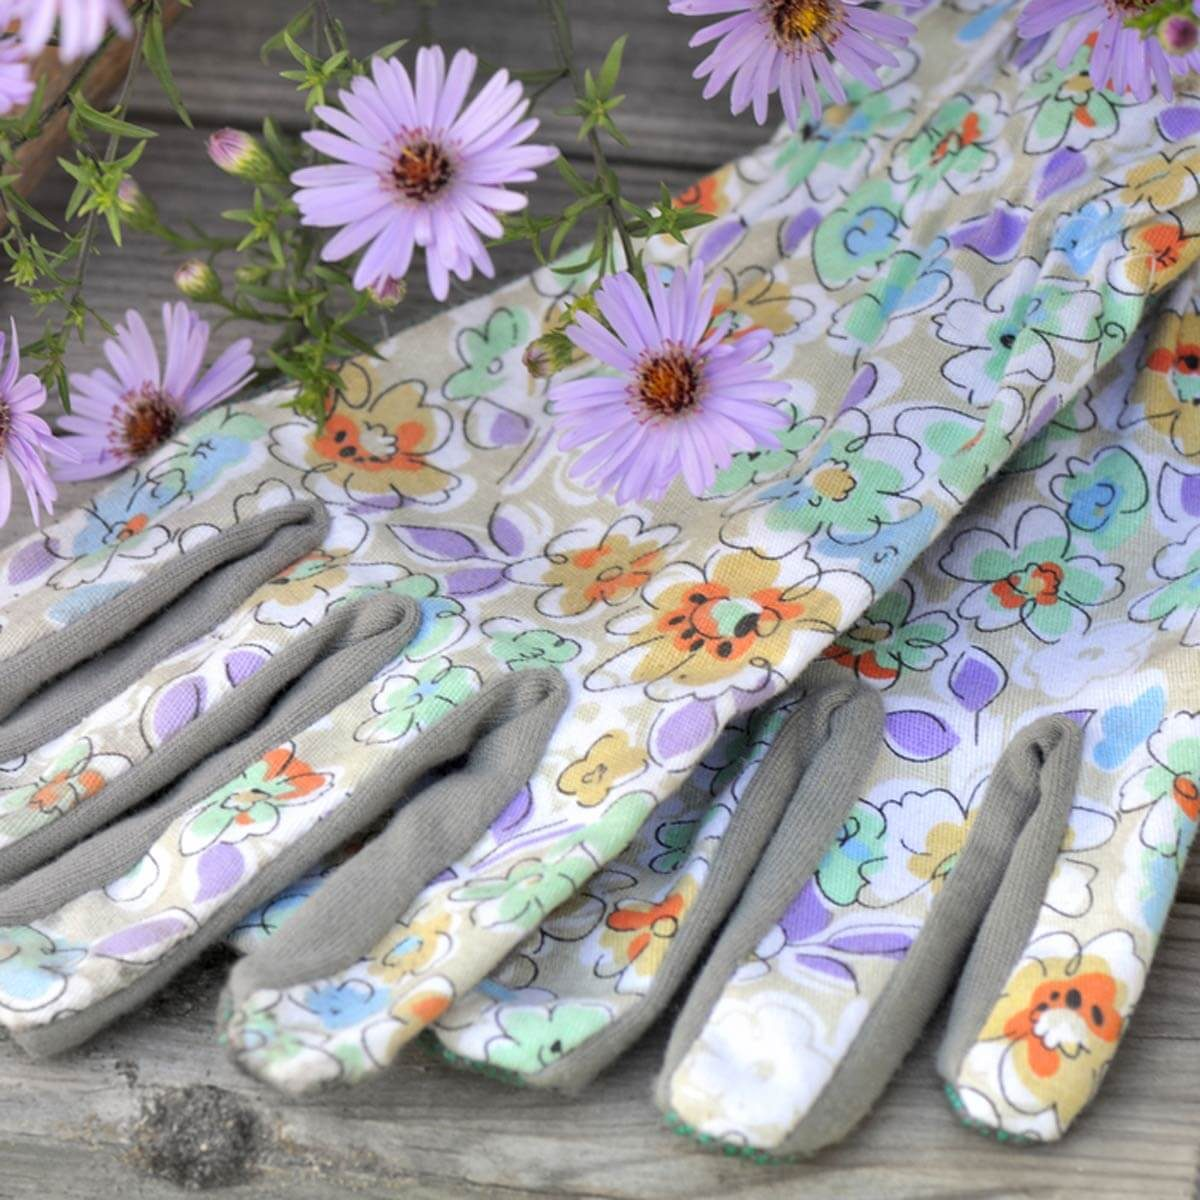 26 incredible gift ideas for gardeners the family handyman gardening gloves workwithnaturefo